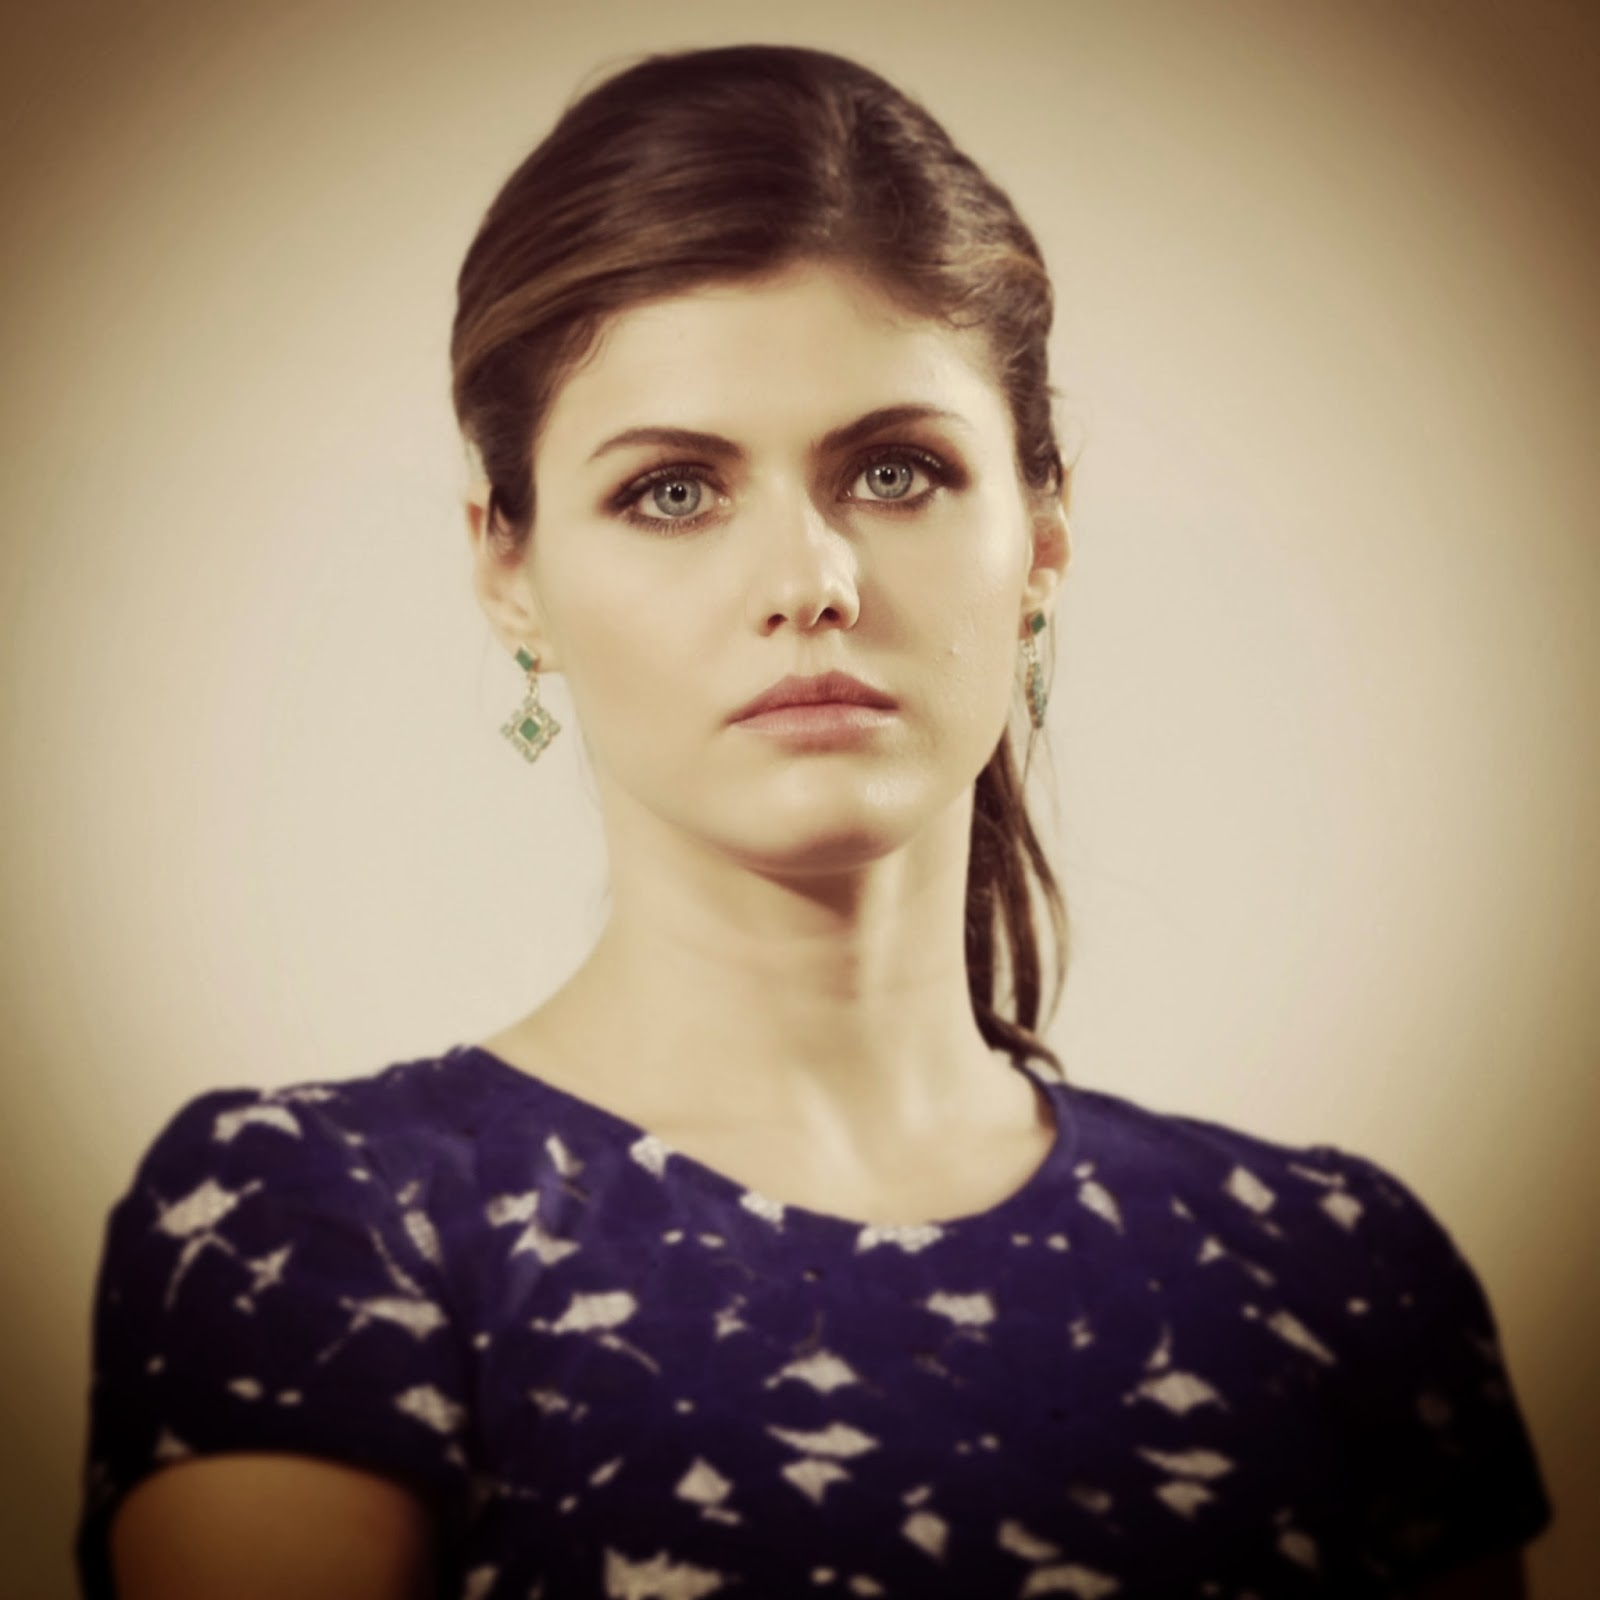 alexandra daddario hd wallpapers | hd wallpaper for your pc and